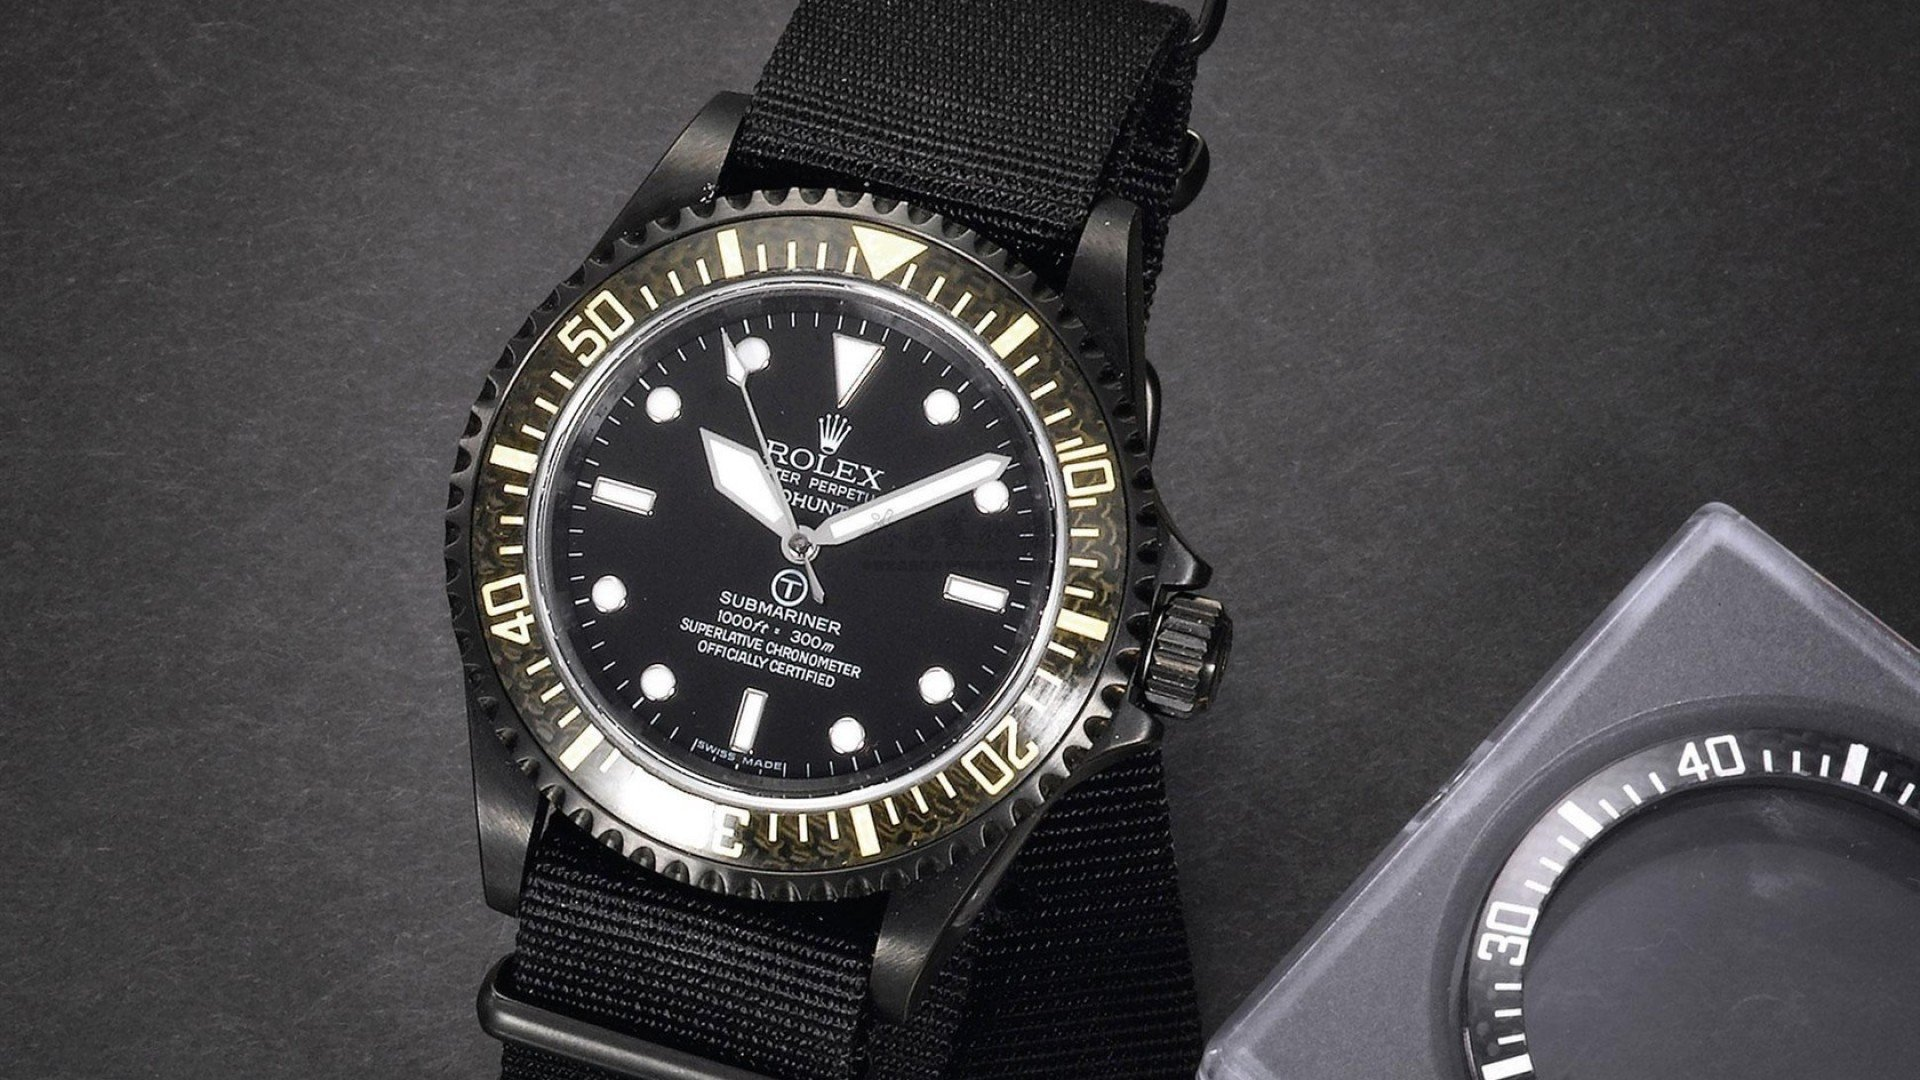 rolex watches wallpapers images